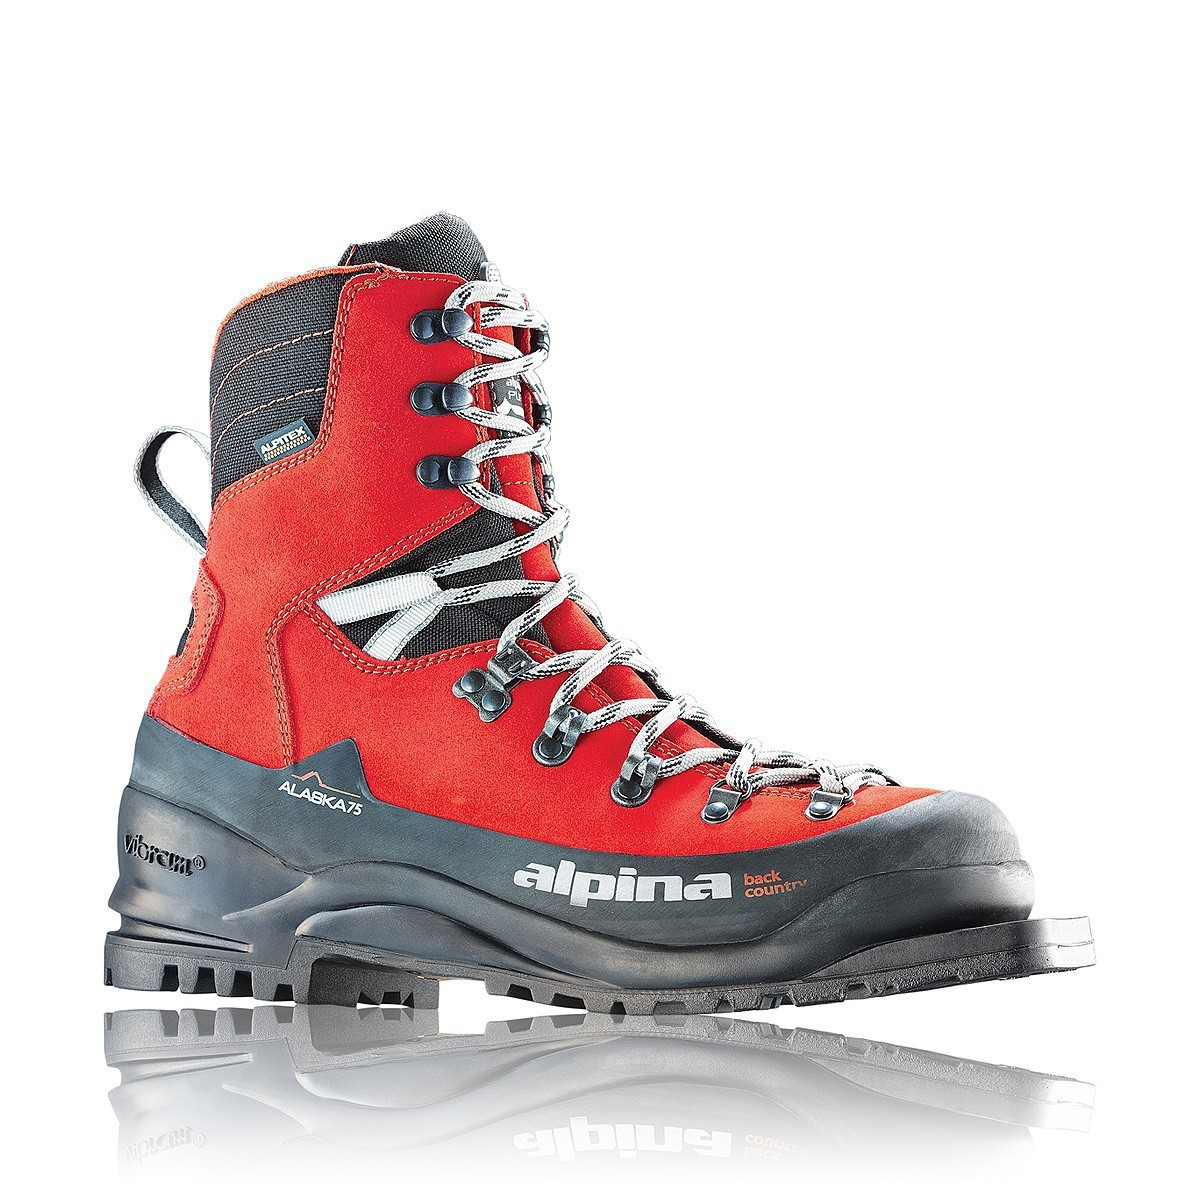 Backcountry Boots